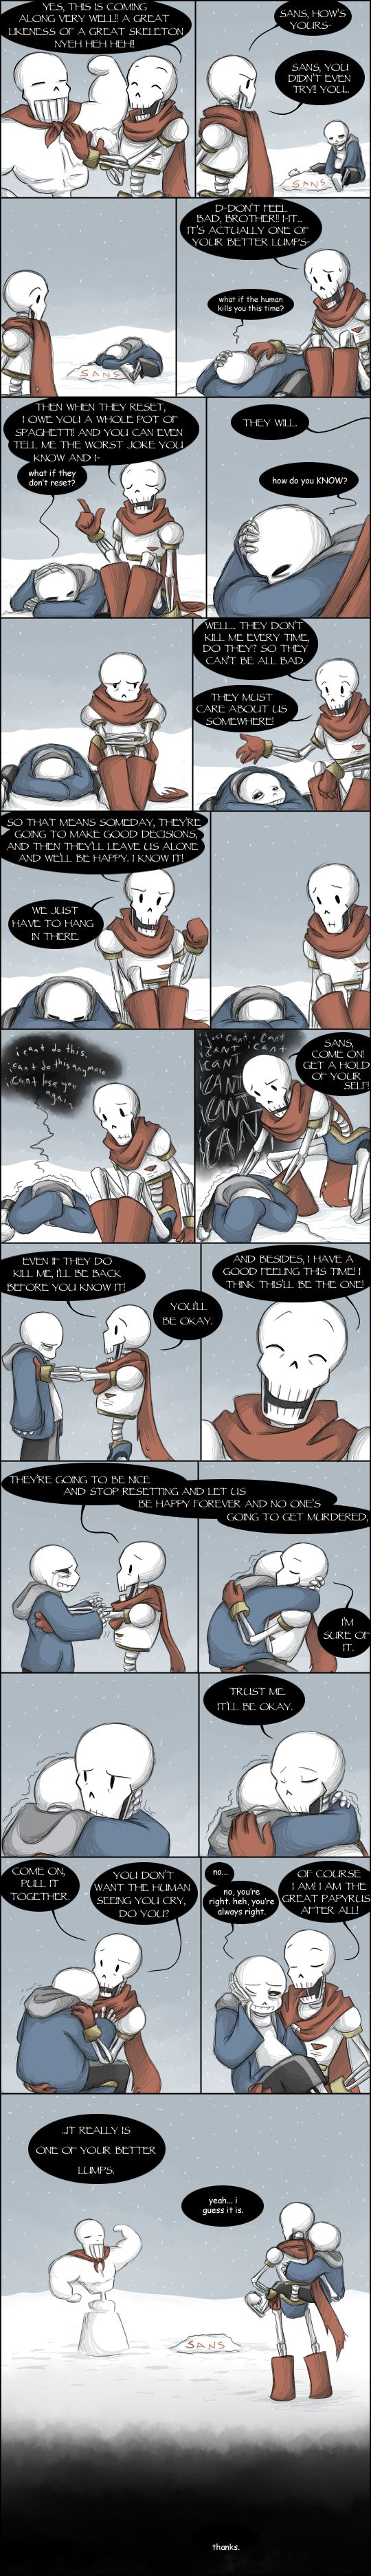 [UNDERTALE SPOILERS] They'll get bored eventually by zarla on DeviantArt<<I-Is this....what the feel...when I reset?! I SHOULD NO BE INVESTED IN THE LIVES OF THESE BABIES!!!